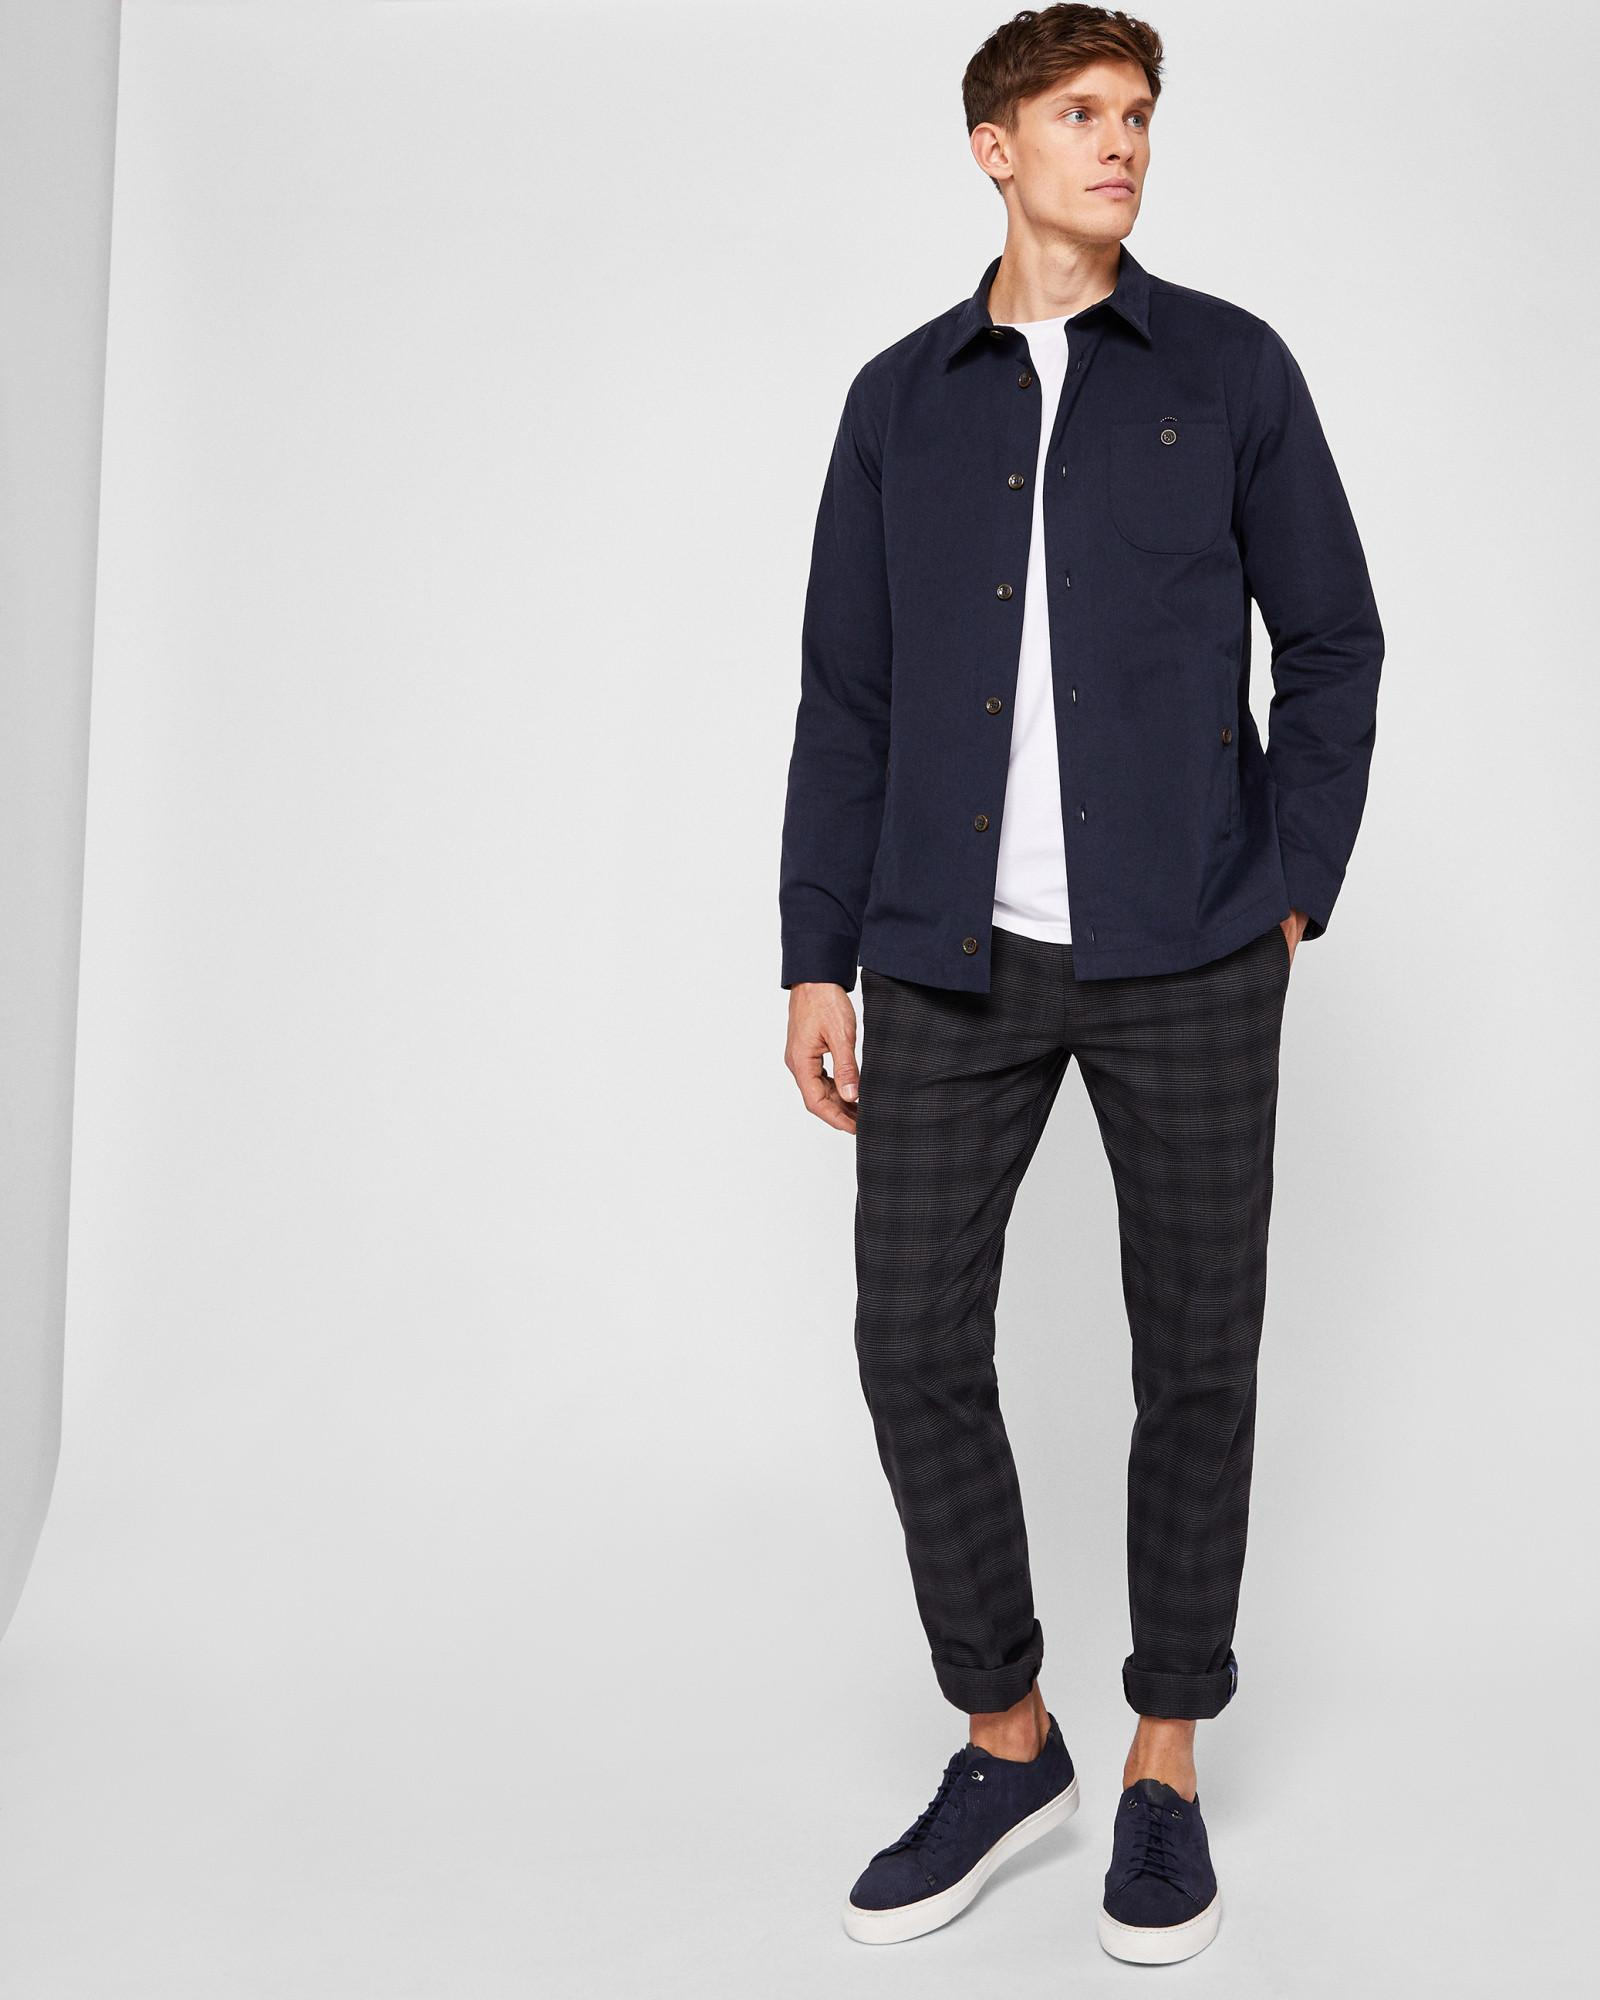 69a77e73a Ted Baker Cotton Shacket in Blue for Men - Lyst